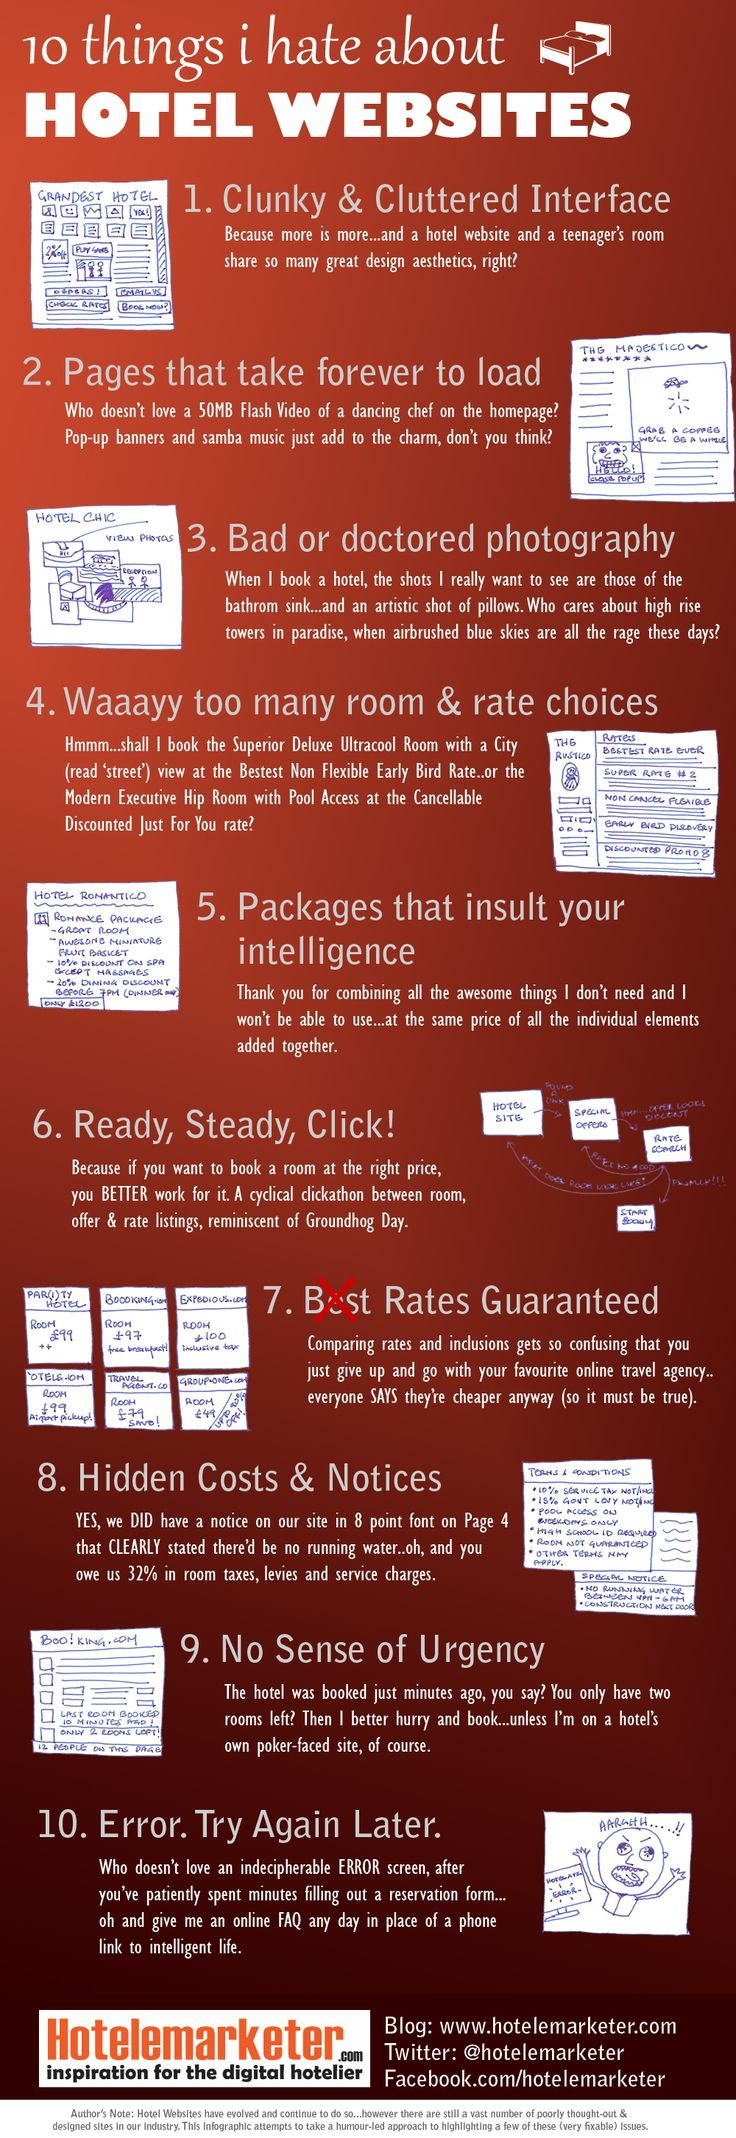 10 Things I Hate About Hotel Websites - Infographic